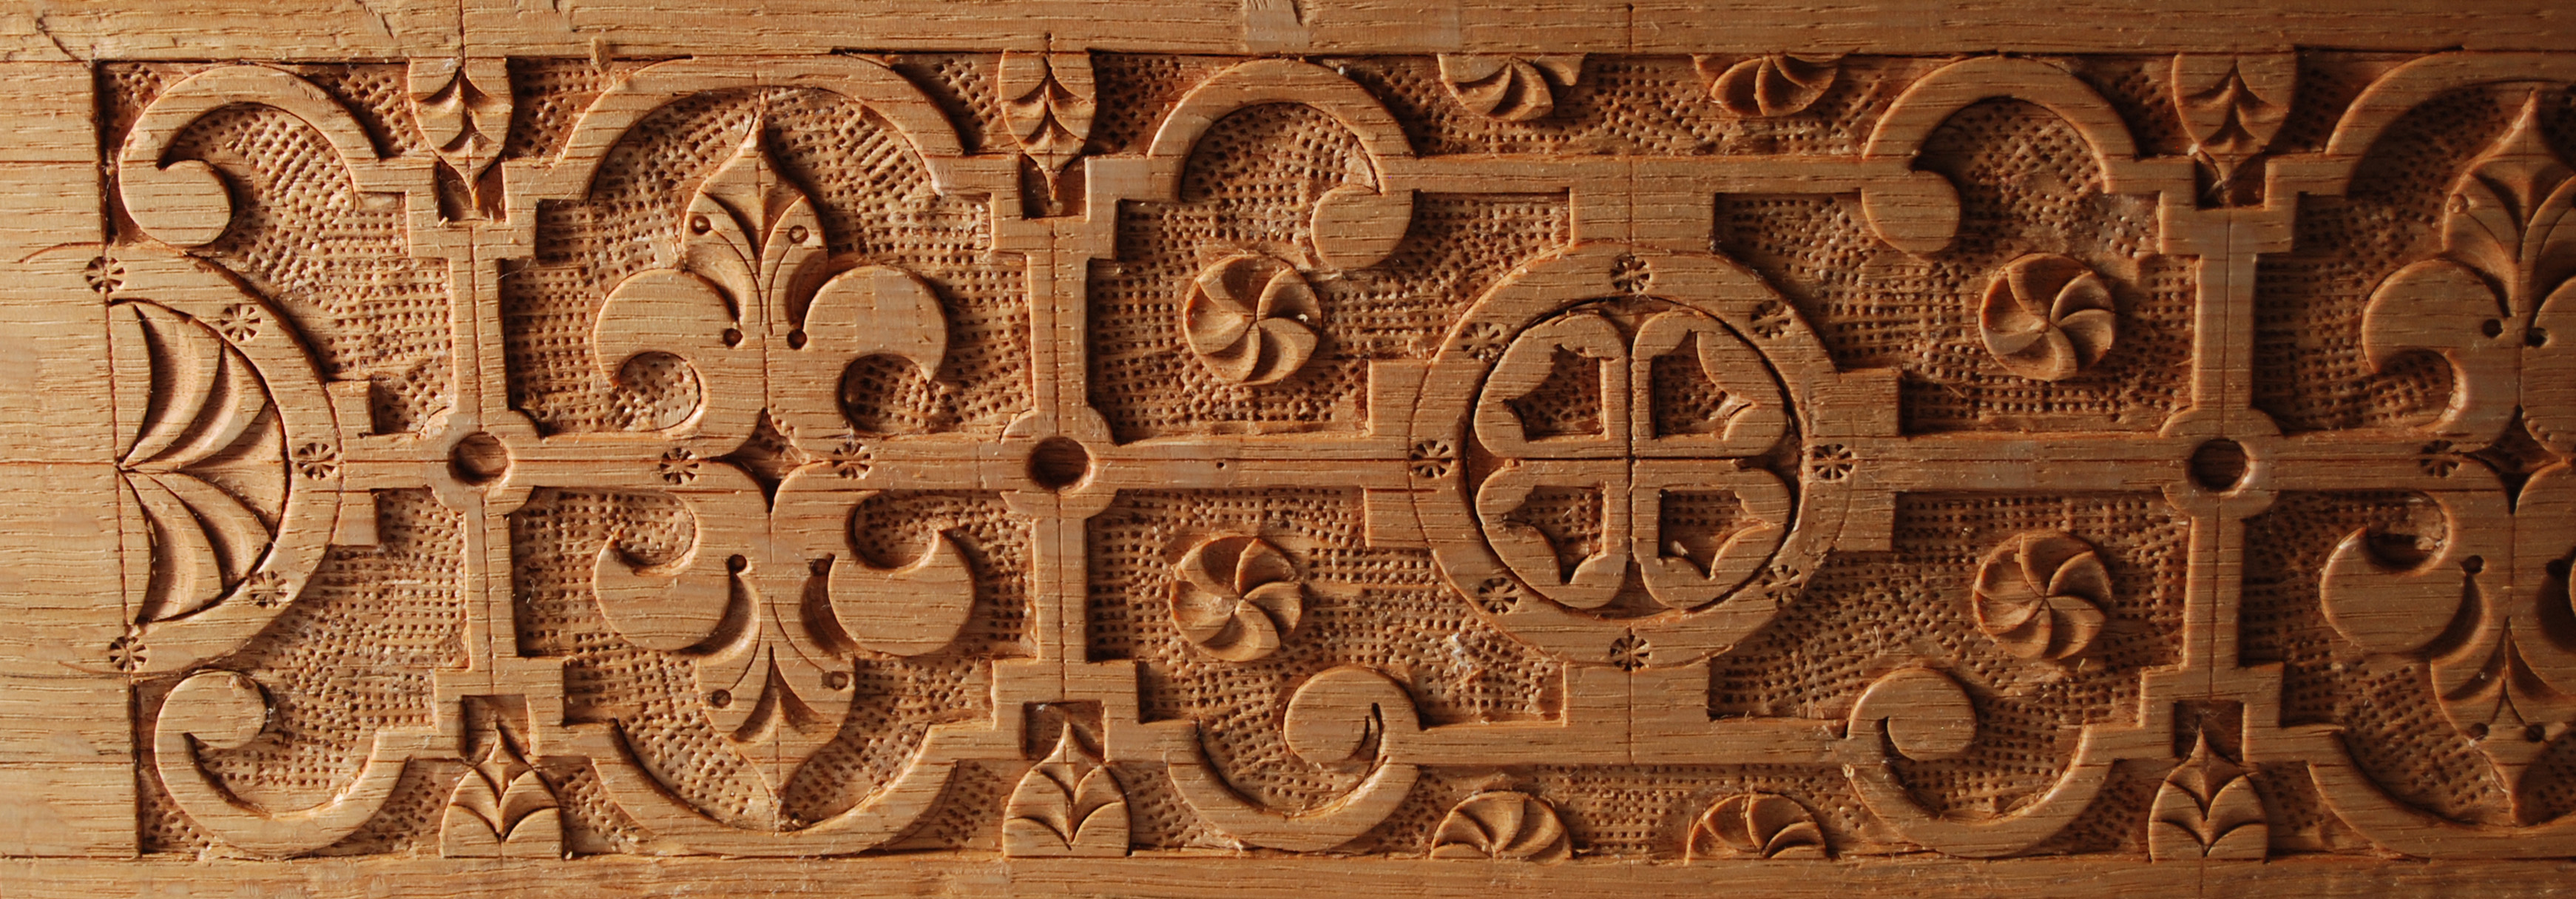 Insane 3d Wallpaper Download Some More Carvings Peter Follansbee Joiner S Notes